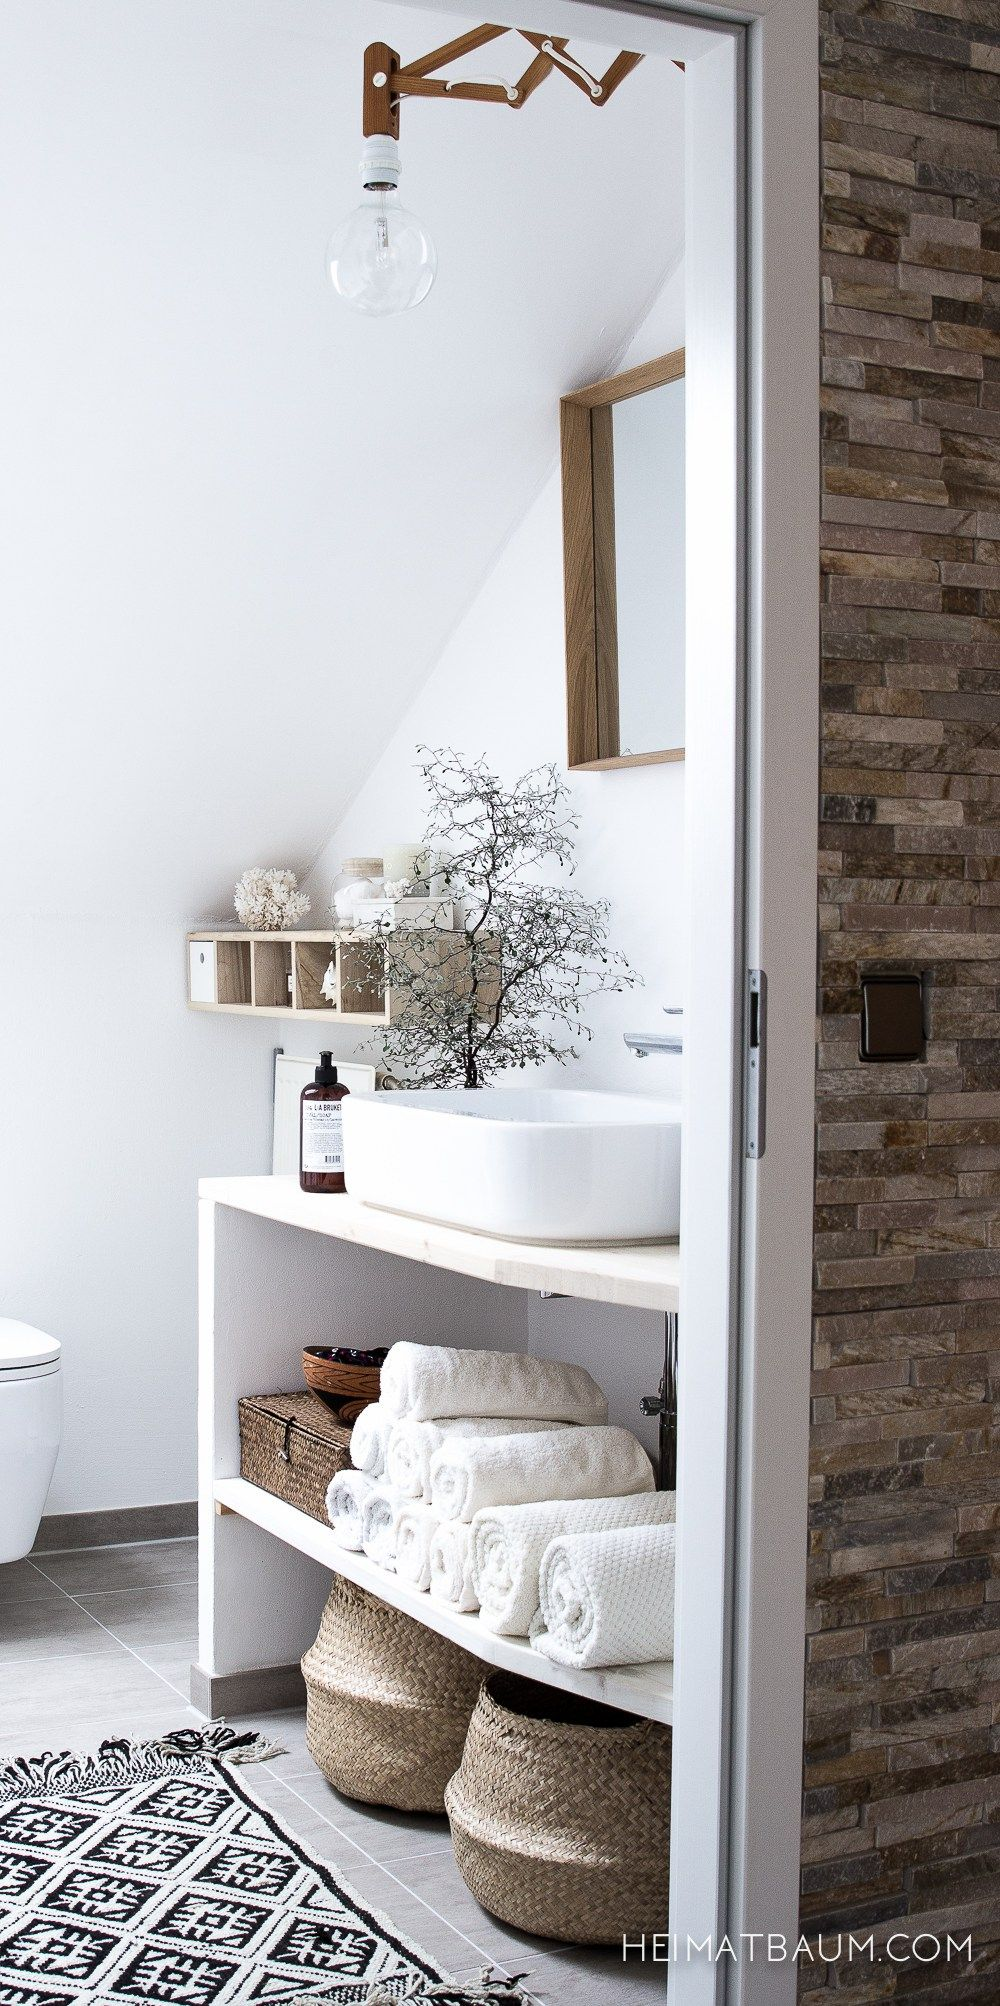 Badezimmer {Alles Neu} (heimatbaum) | Sinks, Towels and Shelves